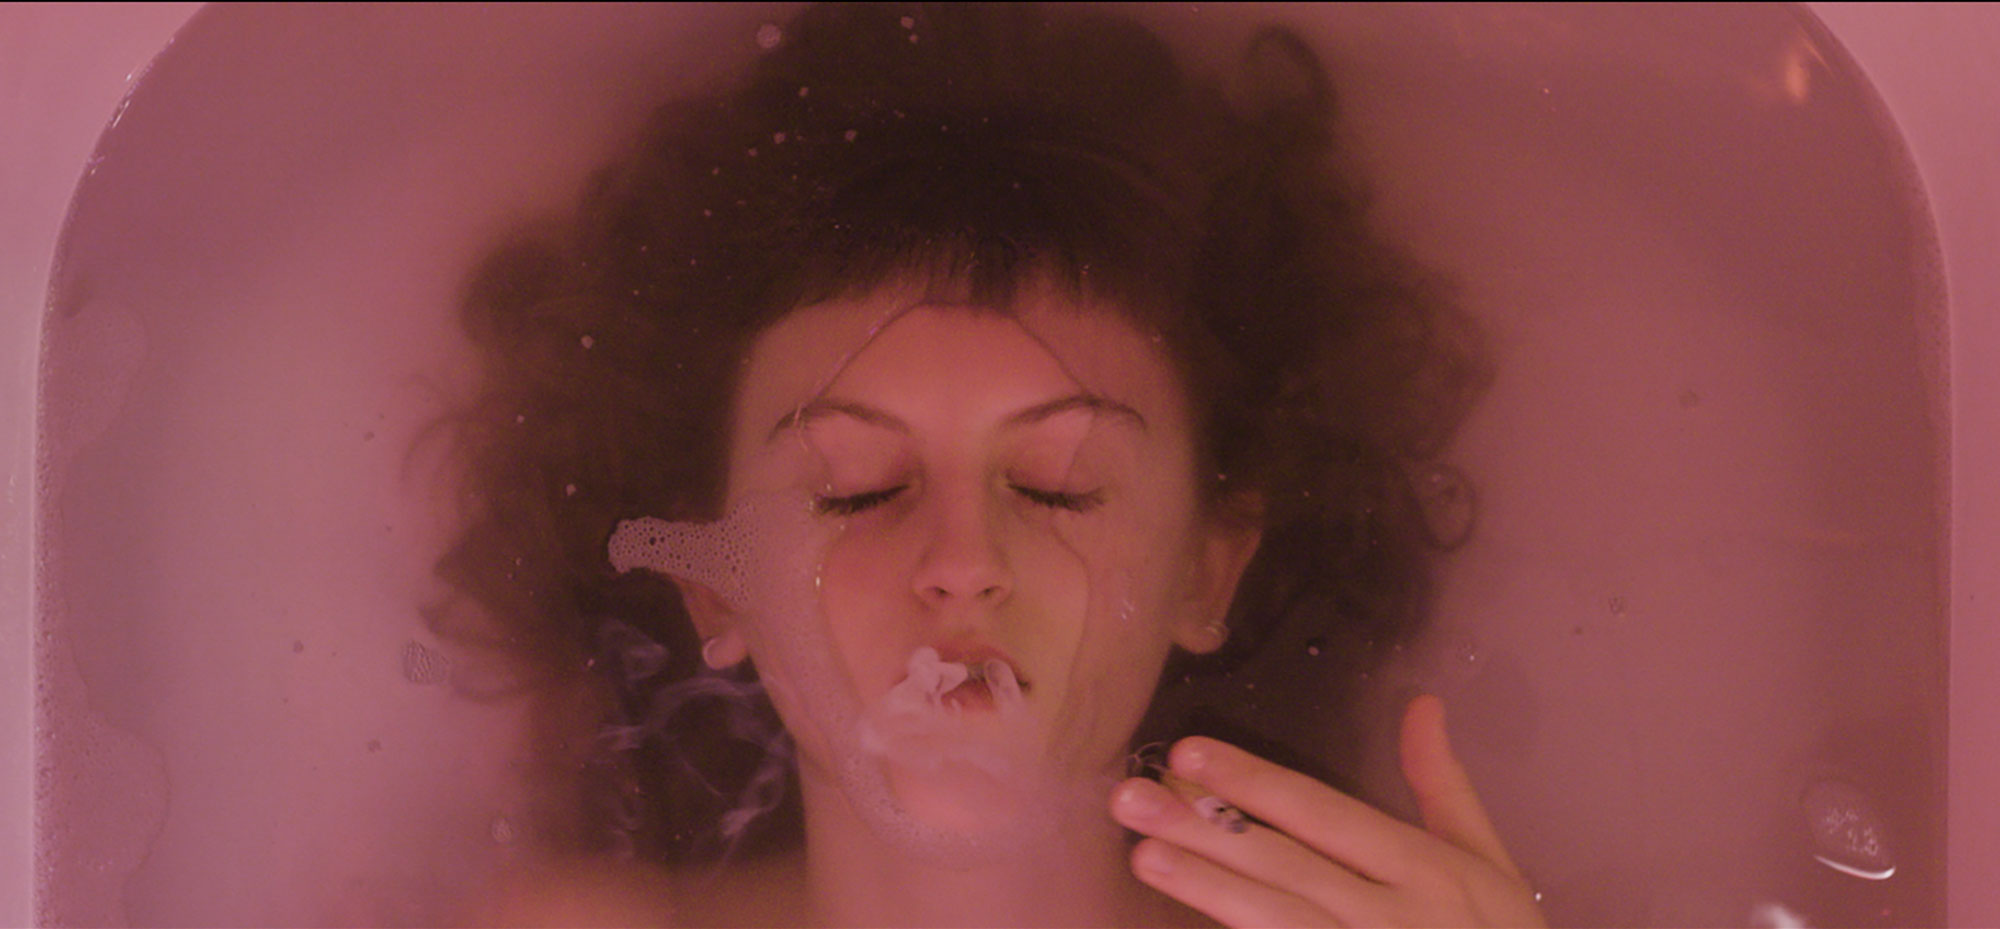 A woman lying face up in a bathtub smoking a cigarette